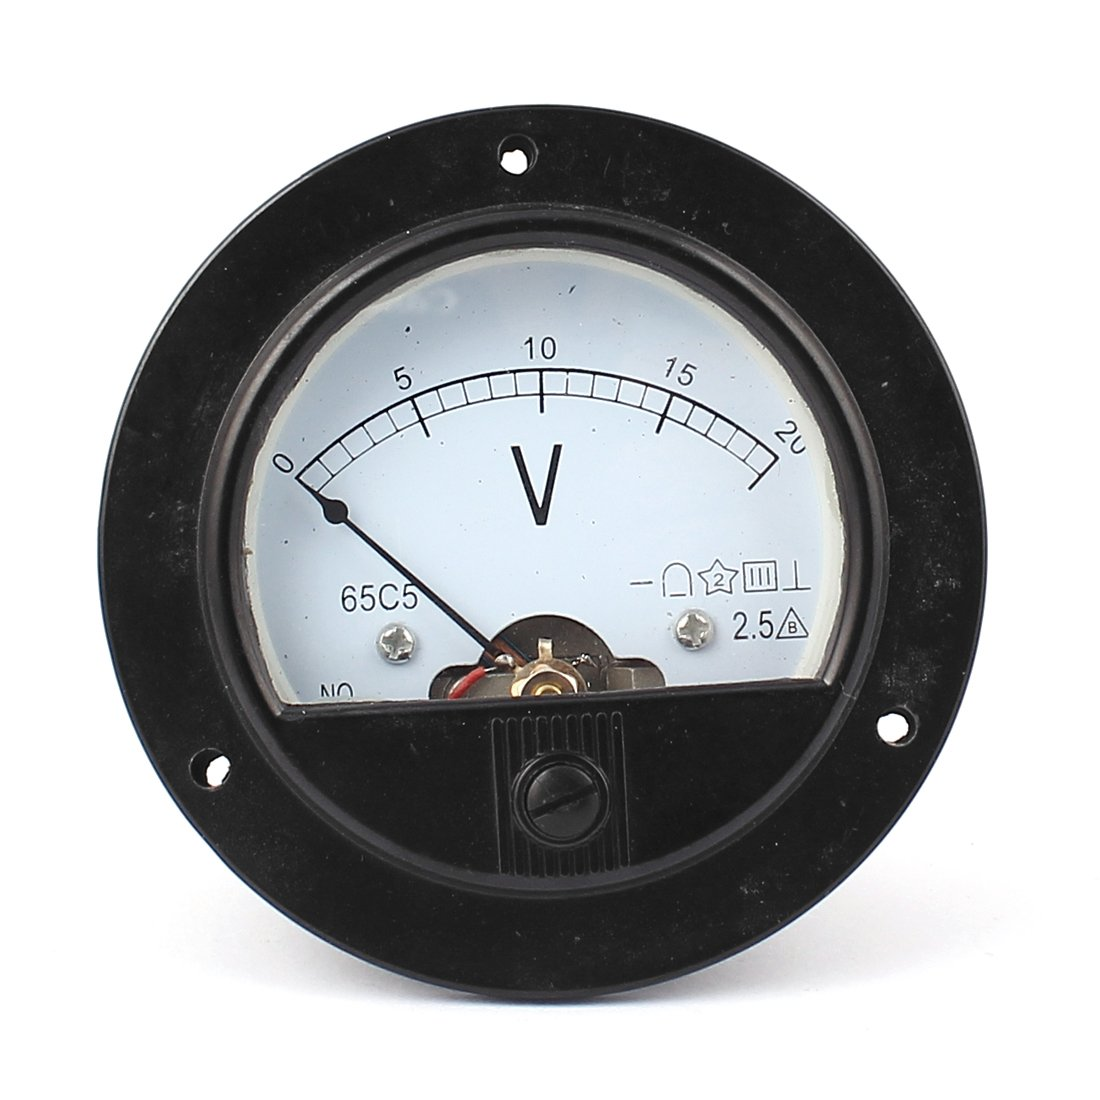 Uxcell a15101200ux0051 DC 0-20V Analogue Panel Meter Volt Voltage Gauge Analog Voltmeter